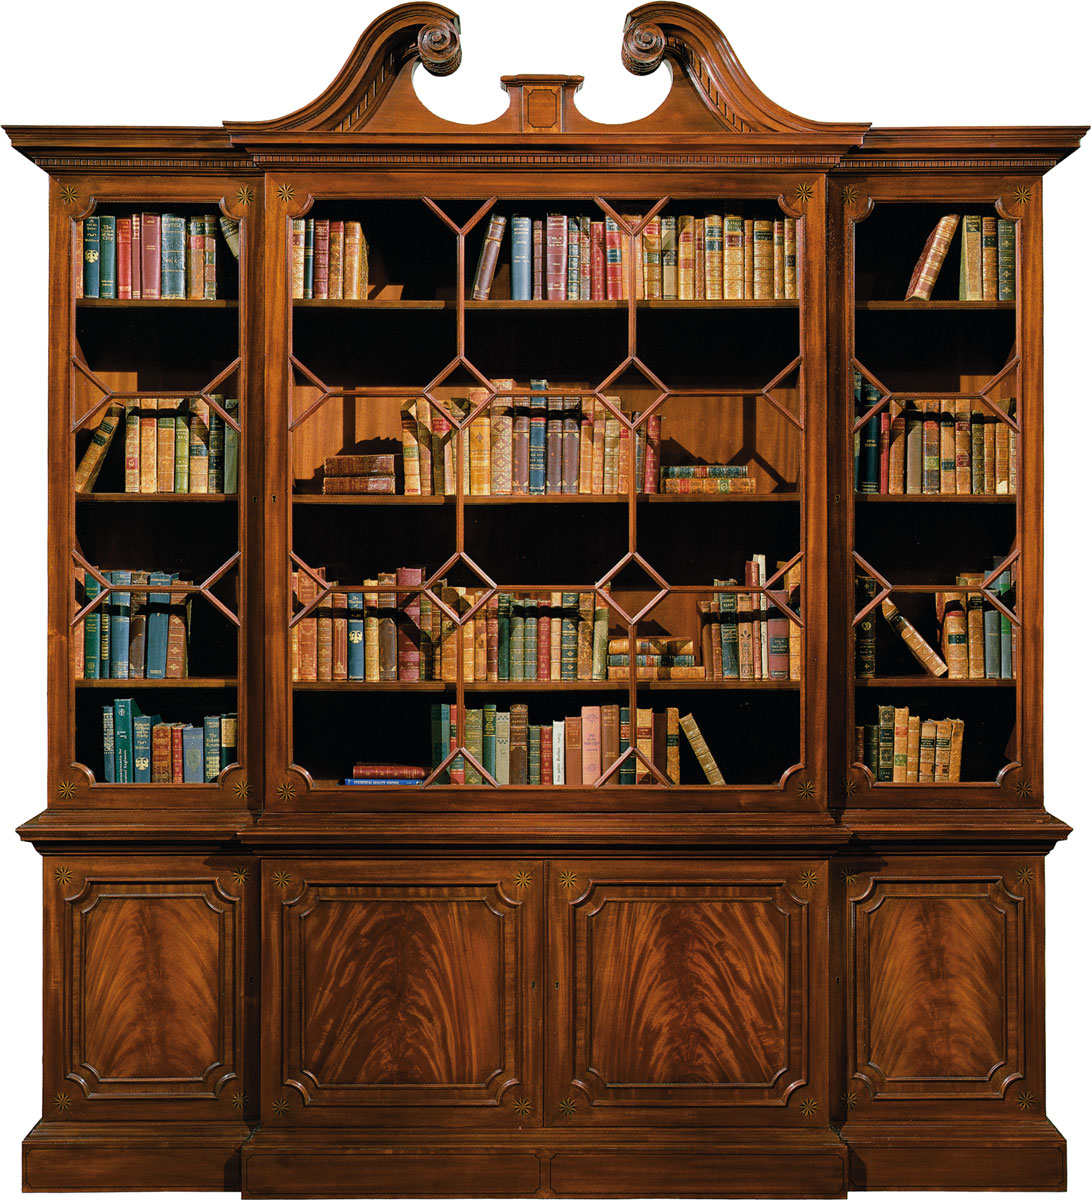 CHIPPENDALE MAHOGANY BOOKCASE